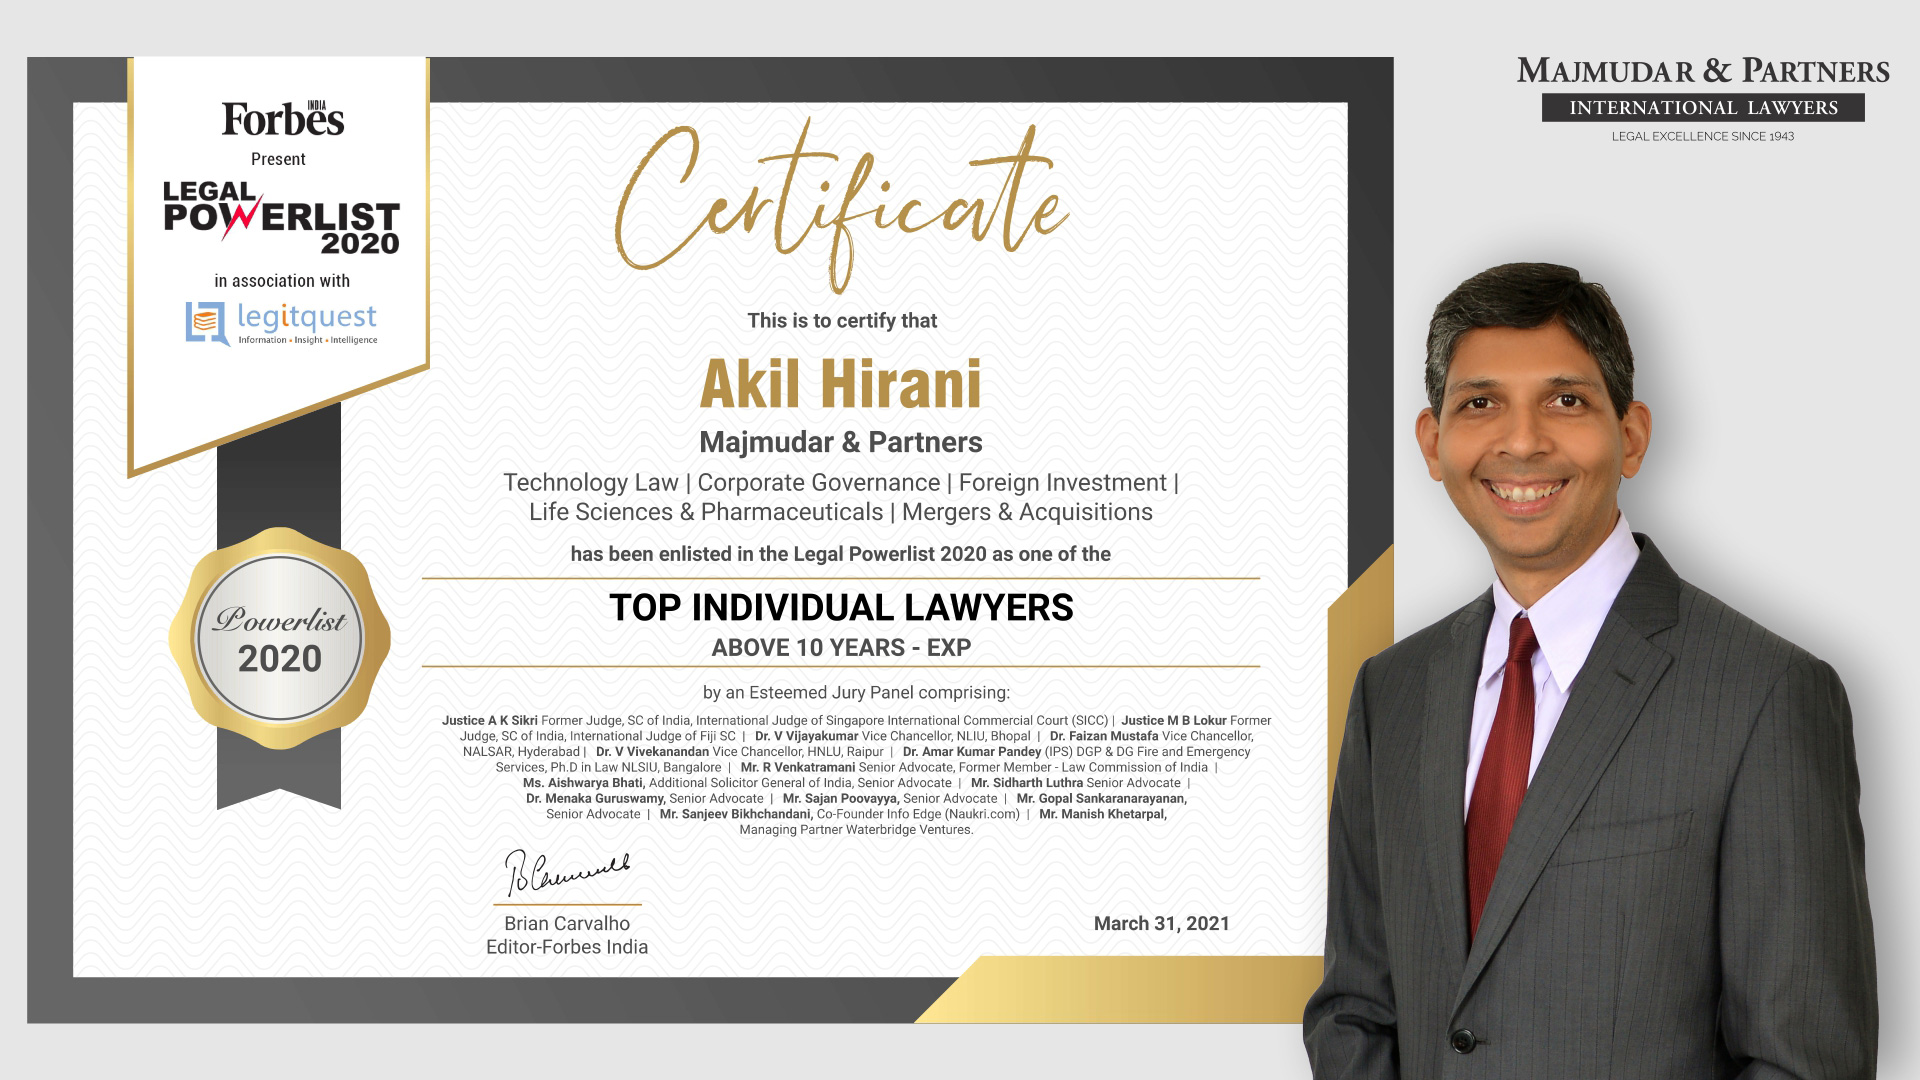 Akil Hirani, Managing Partner & Head of Transactions Practice at Majmudar & Partners, has been featured as a top-ranked lawyer in Forbes India's Legal Powerlist 2020. The list recognizes some of the best lawyers in India in the year 2020 based on several parameters.